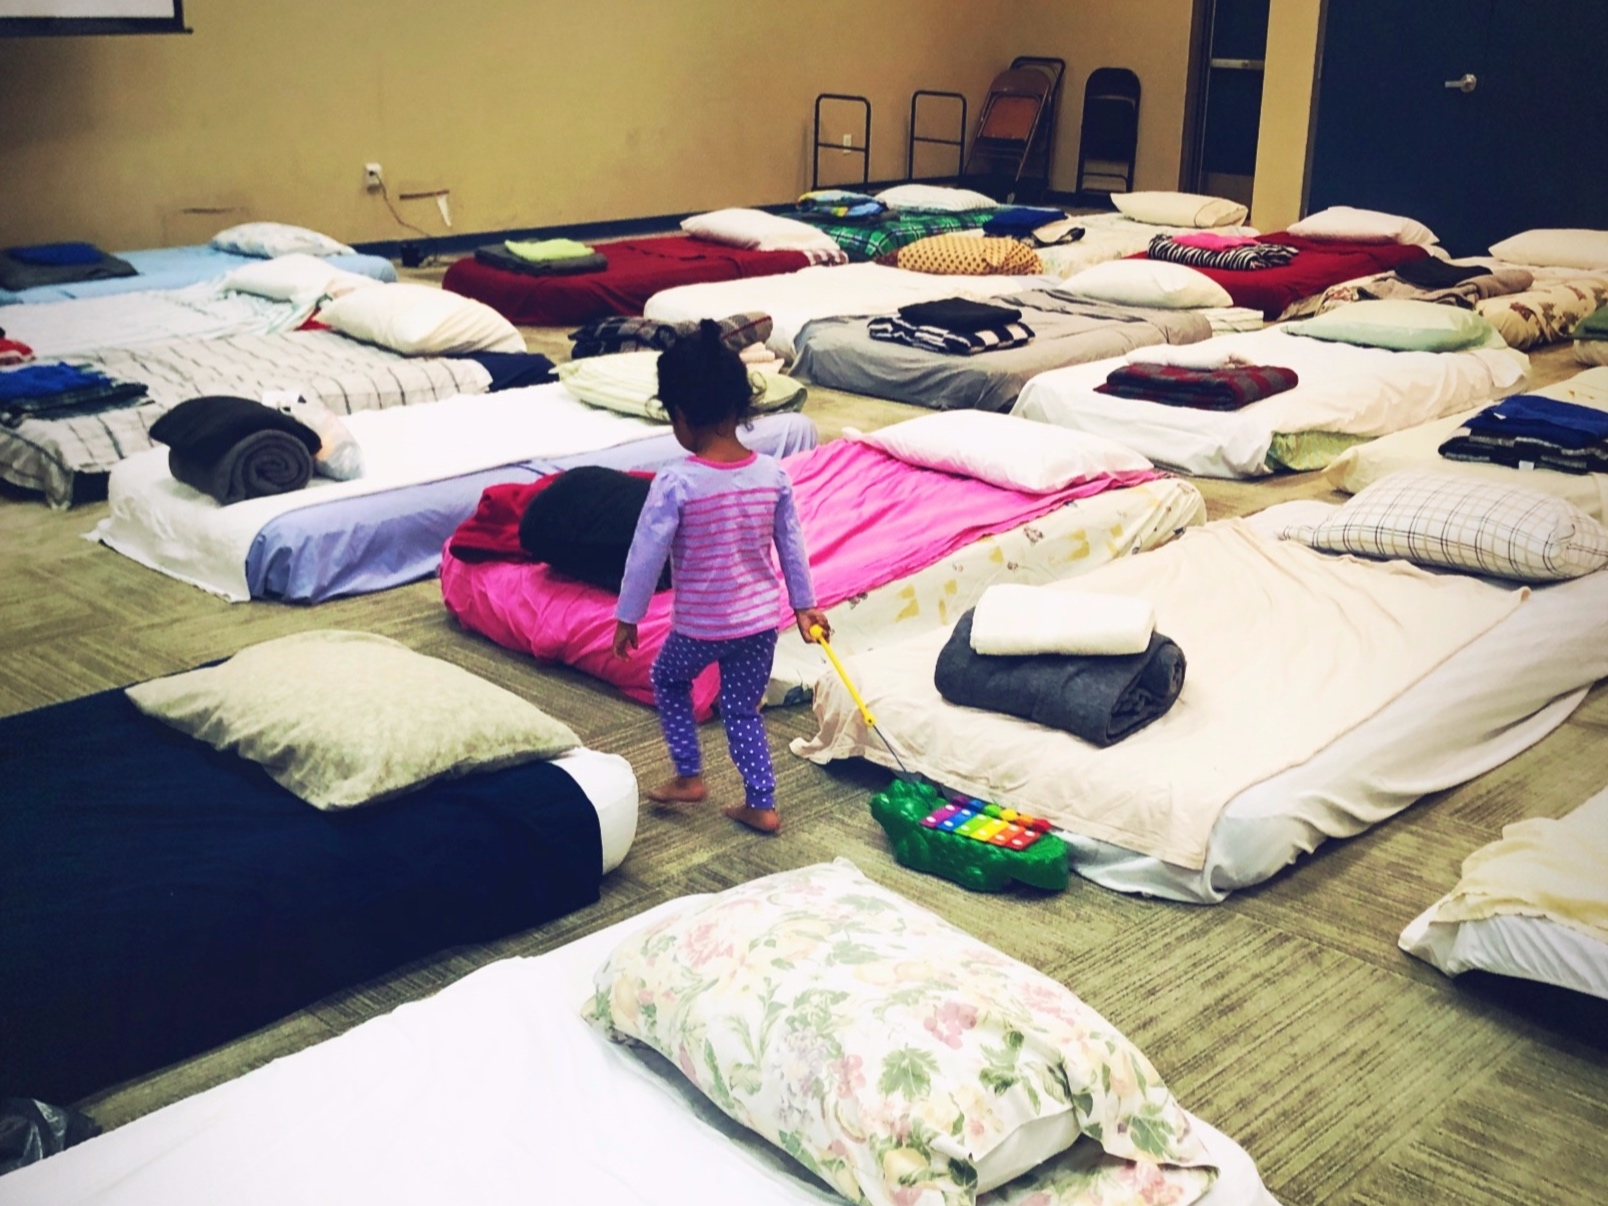 Young asylum seeker gets ready for rest after her long journey.   All photo credits: Laurie Smith Photography